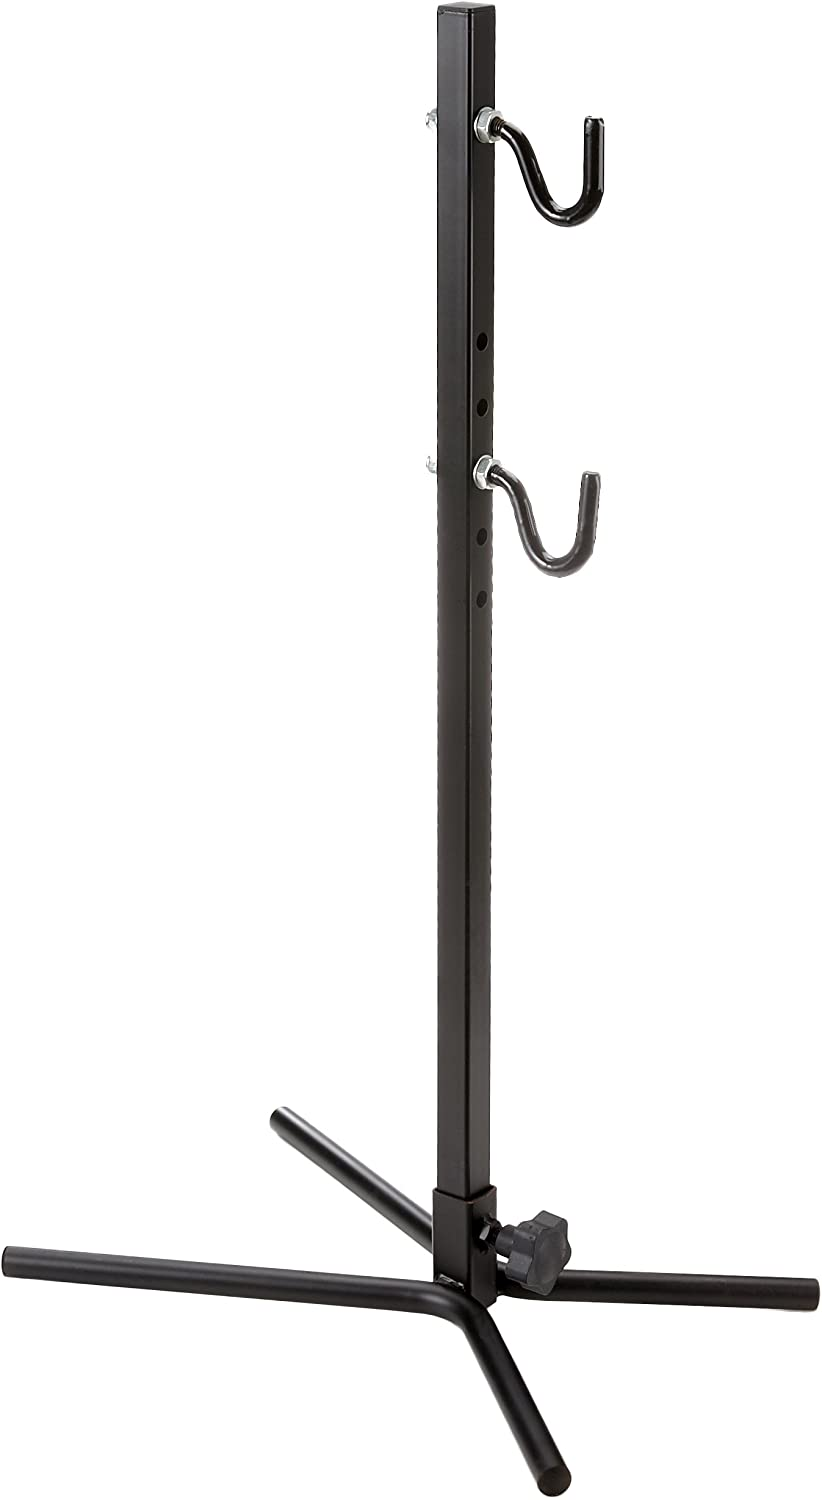 Point 13600201 Bicycle Display Stand with Rubberised Hooks Adjustable for Any Frame Type Black